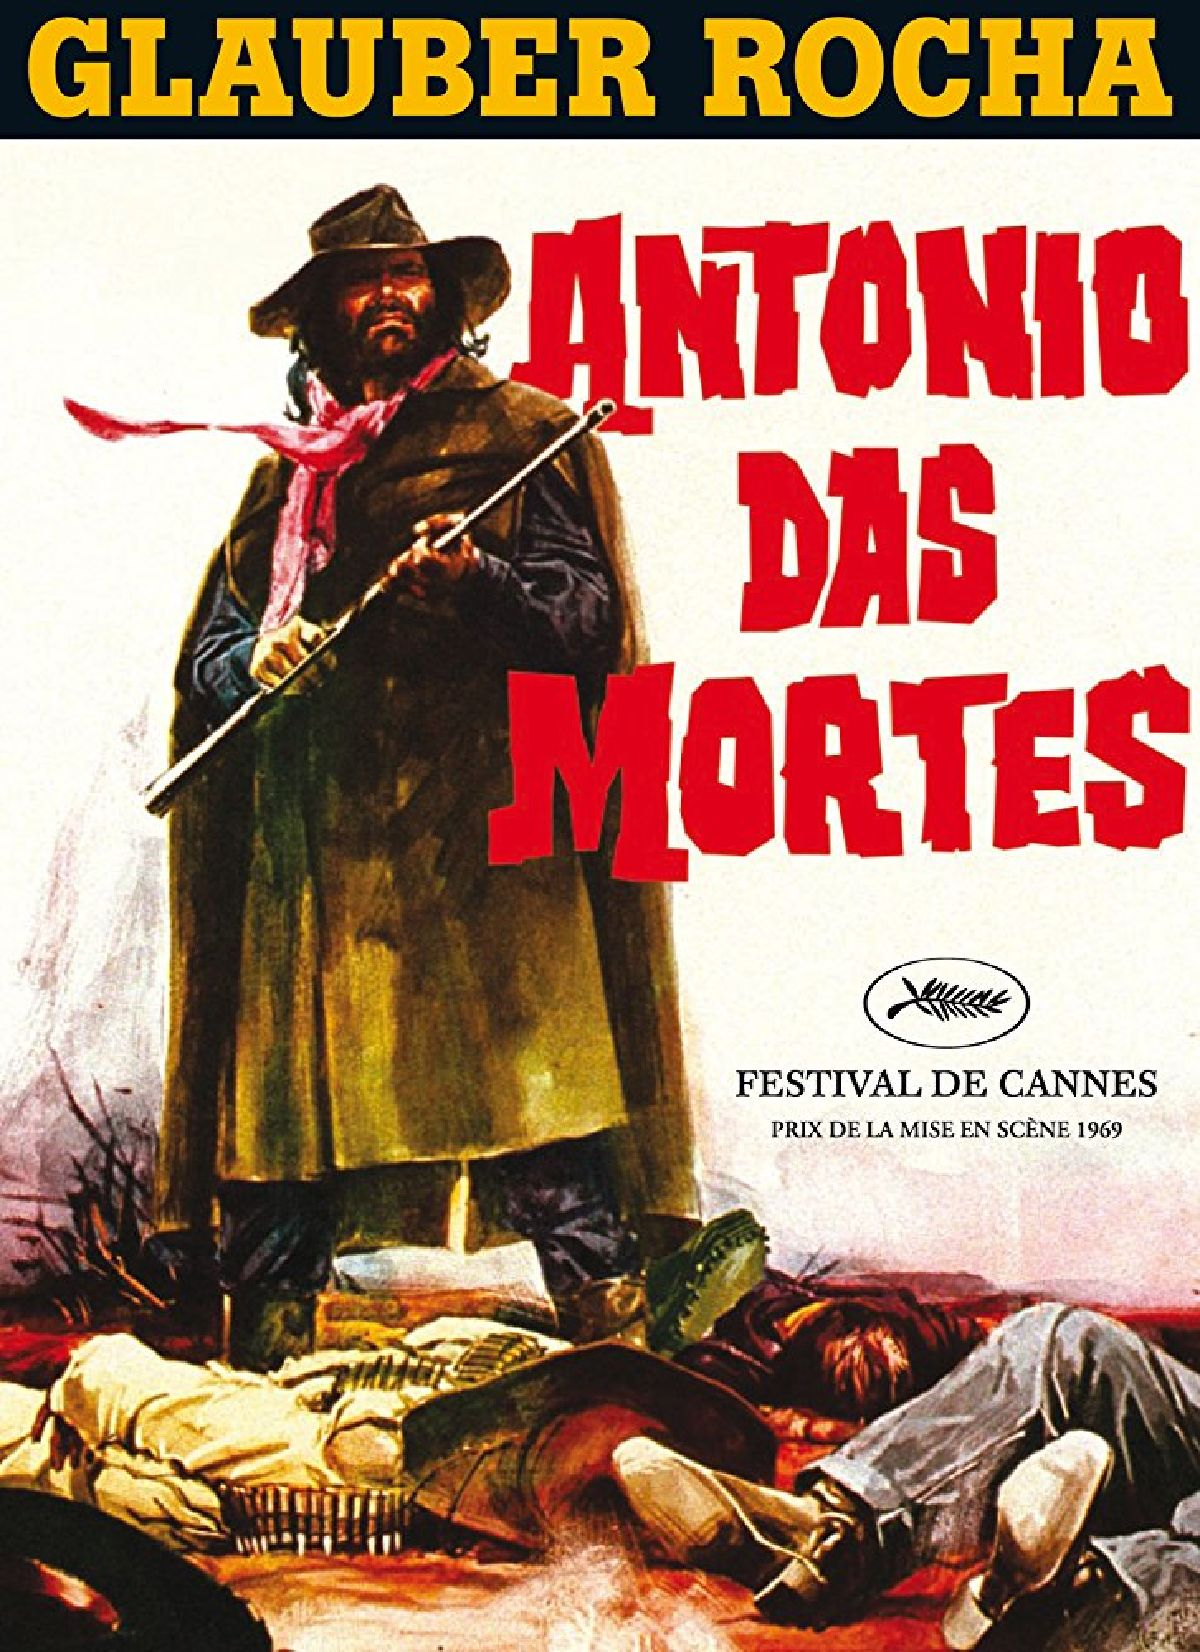 'Antonio Das Mortes' movie poster